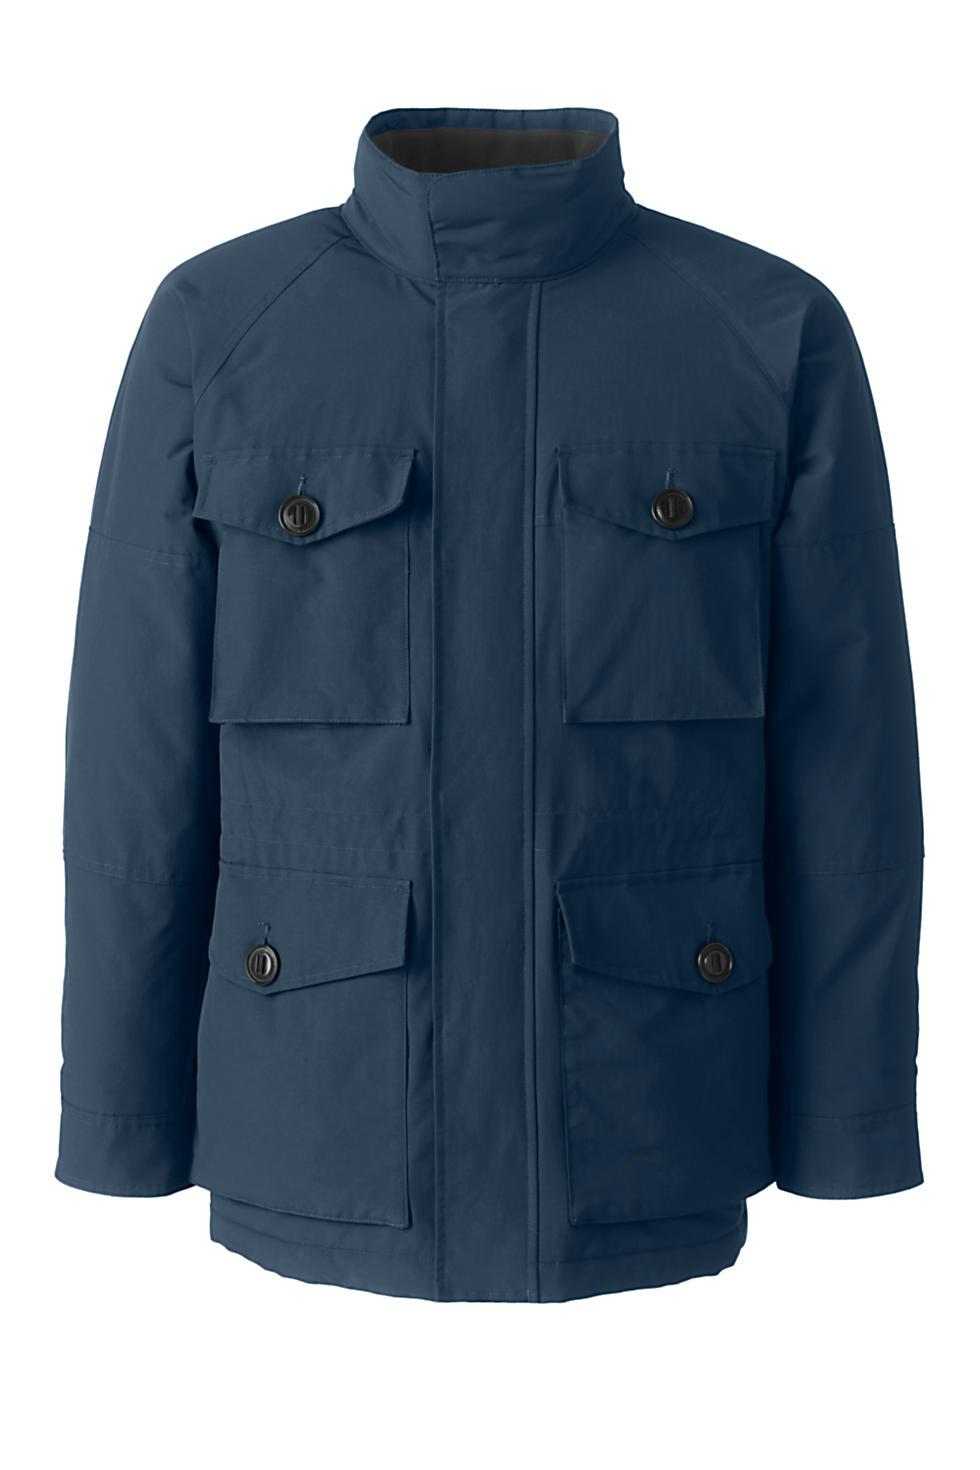 Lands End Mens Squall Military Jacket (Radiant Navy)